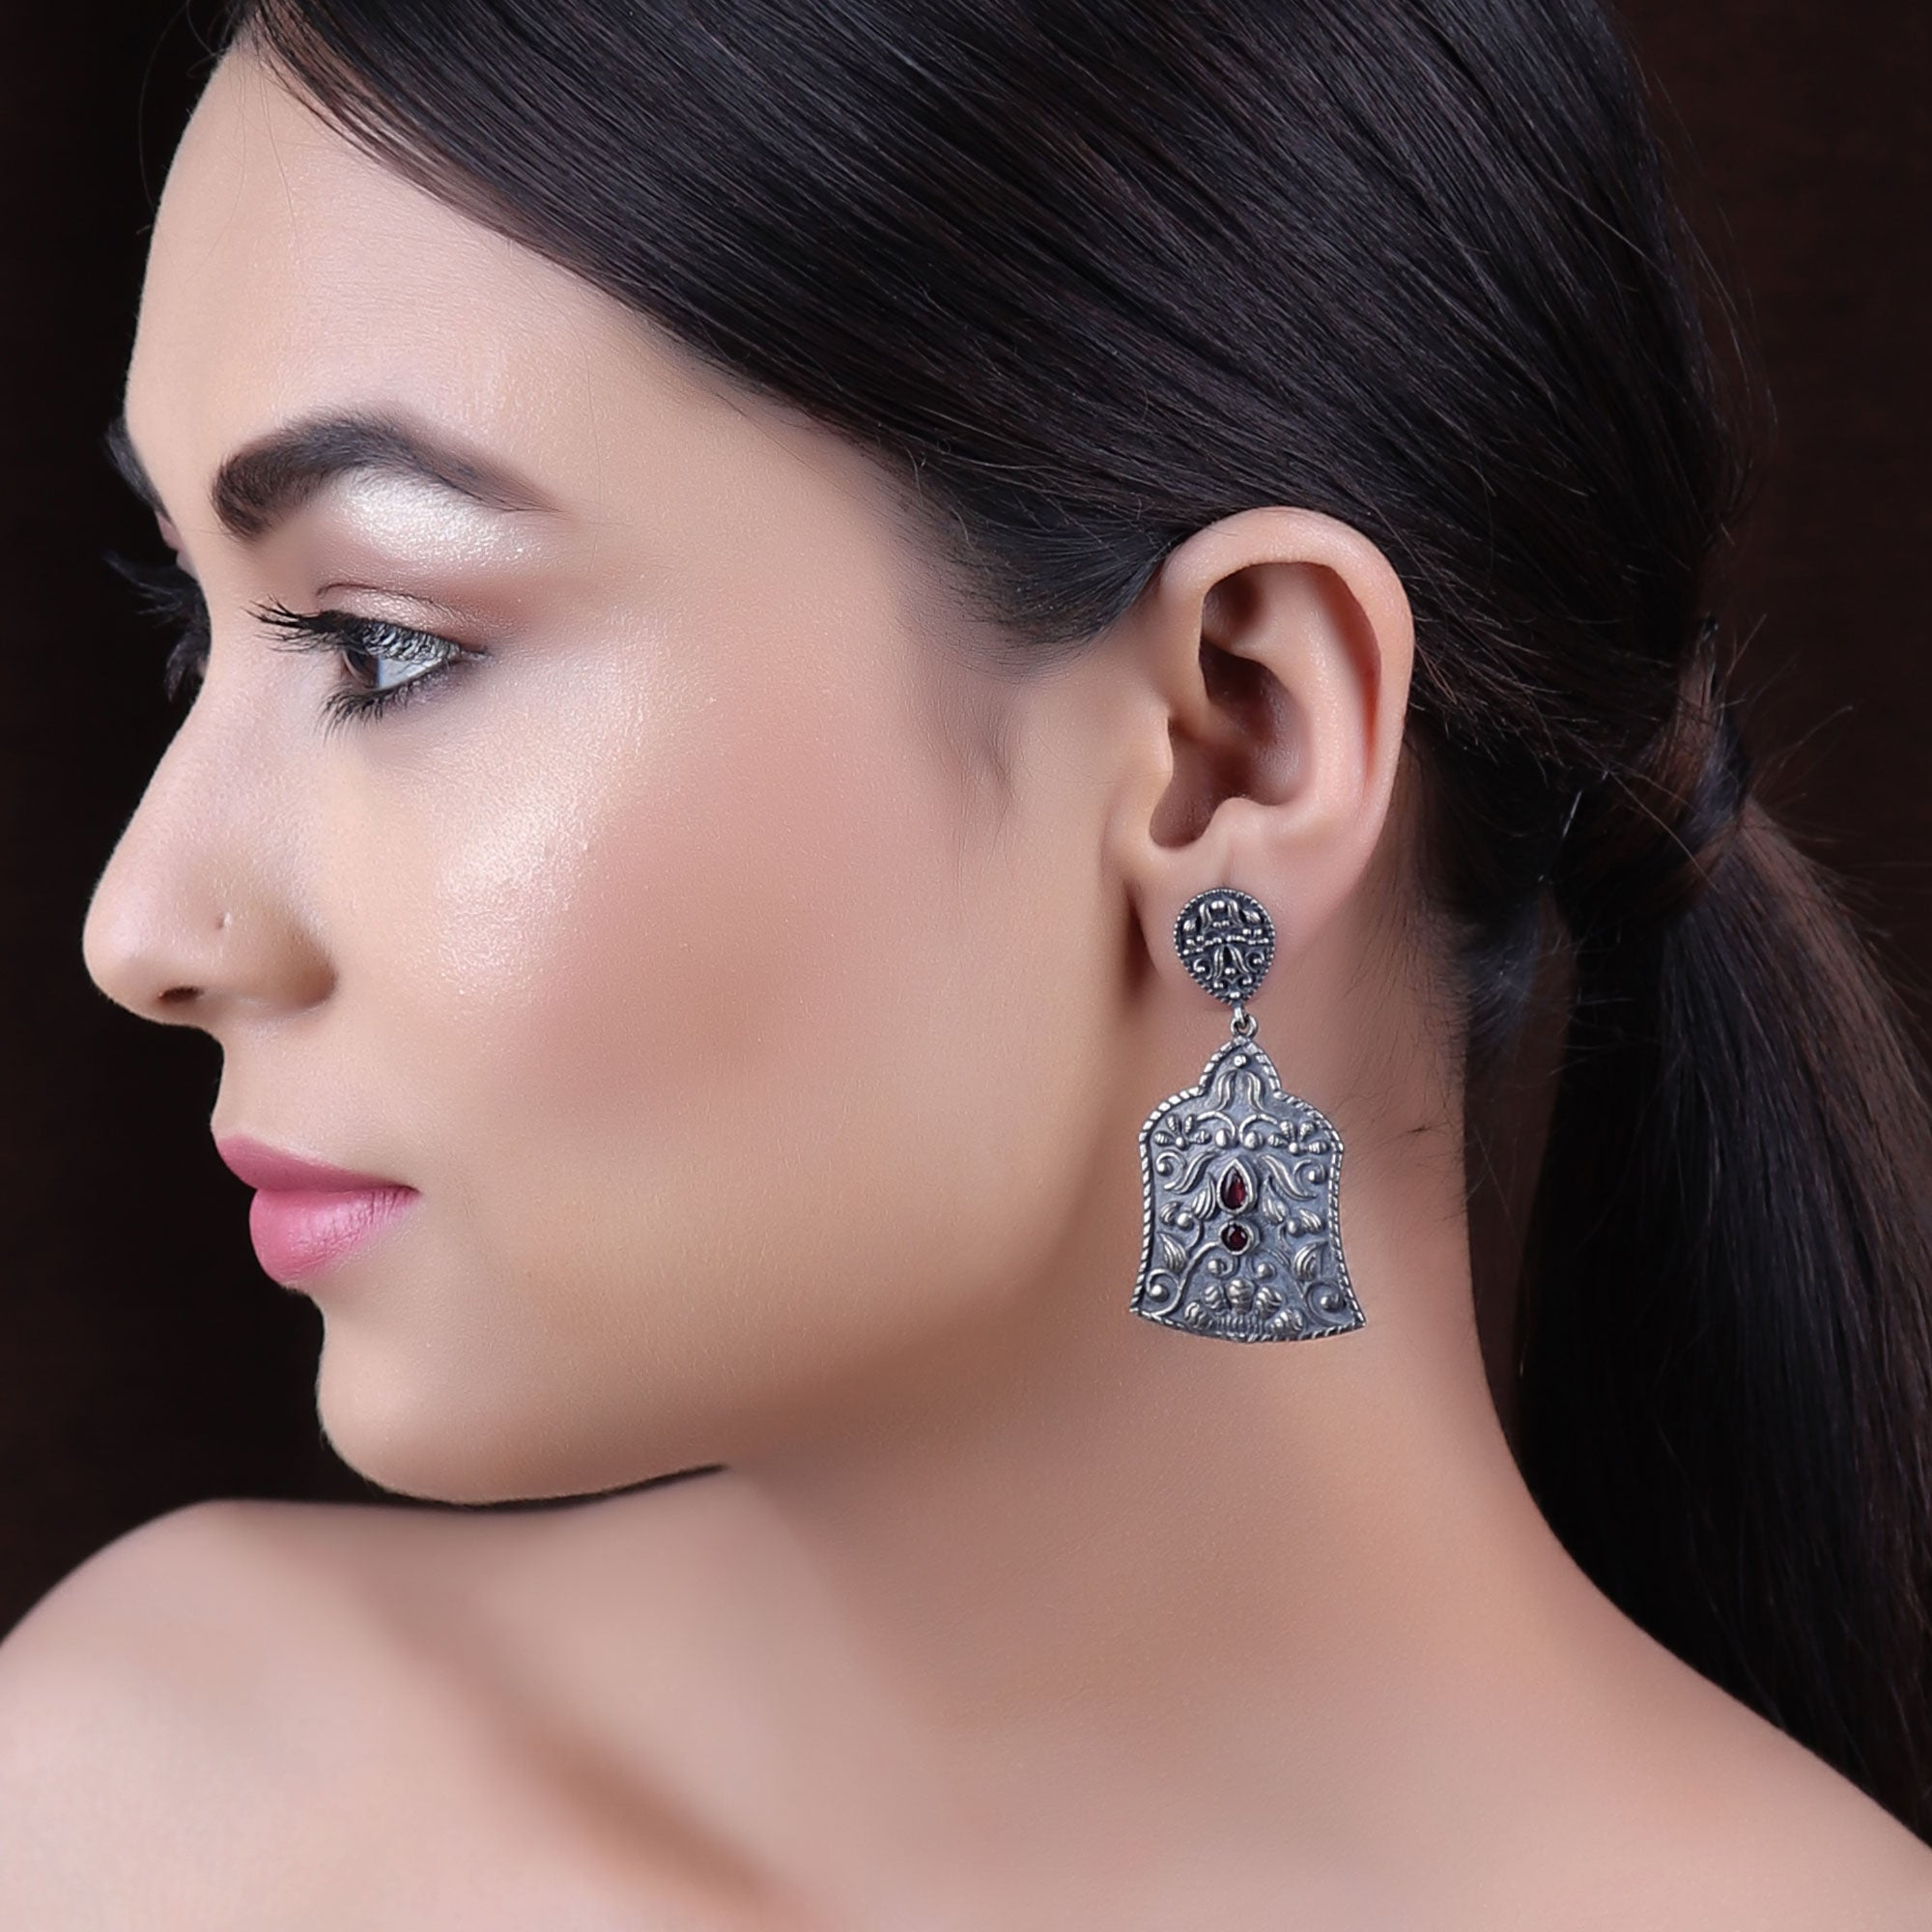 Earrings,The Lantern Silver Look Alike Earring with Red Stone - Cippele Multi Store